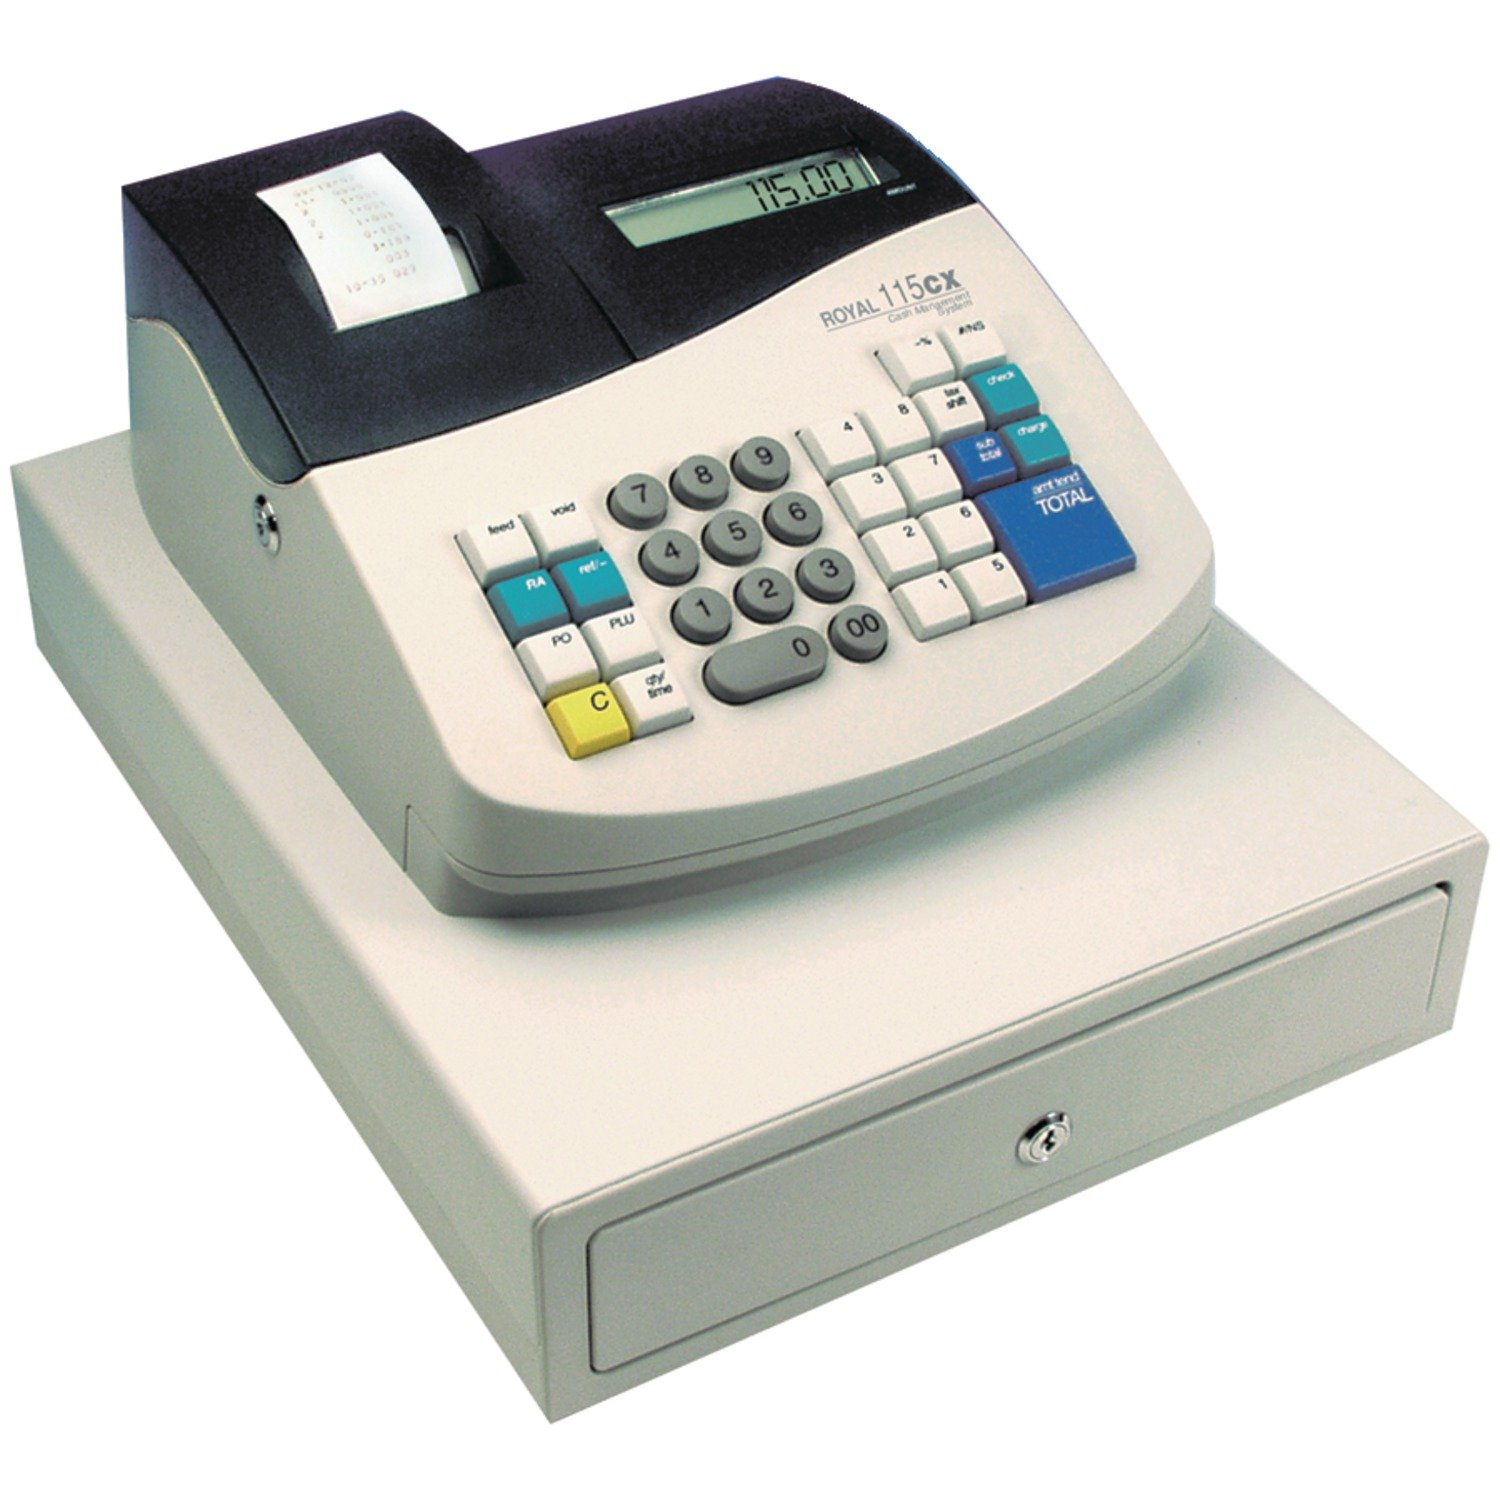 Amazon.com : Royal Cash Register (115CX) : Battery Operated Cash Register :  Office Products